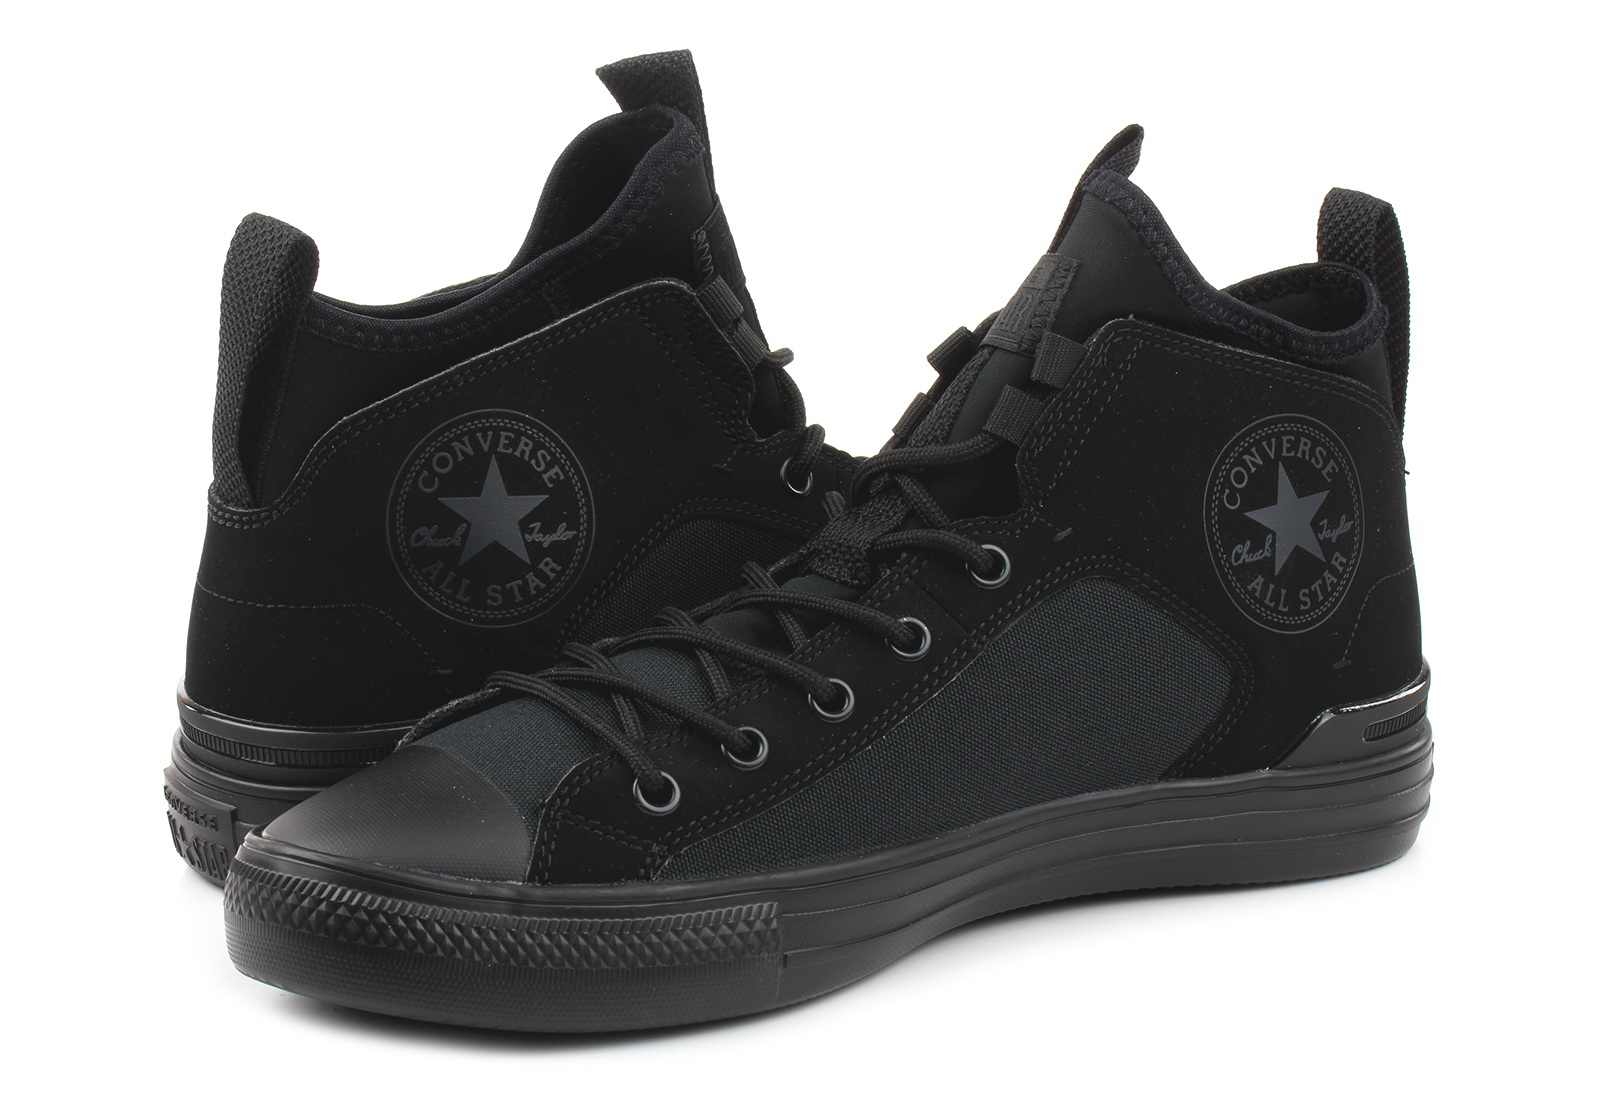 Converse Tenisi Ct As Ultra Mid